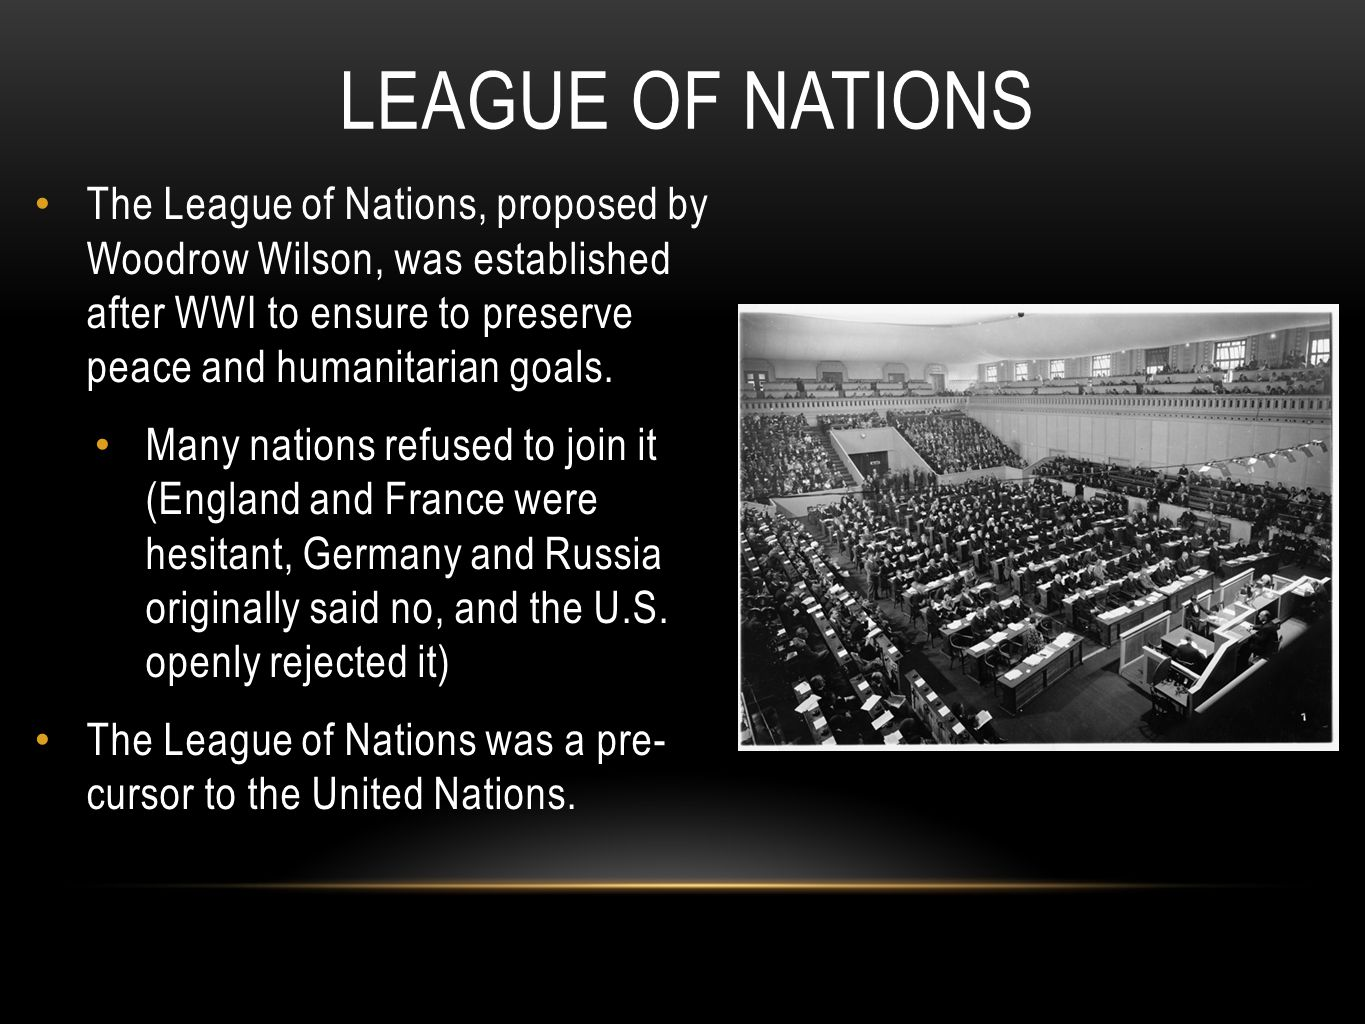 League of Nations The League of Nations, proposed by Woodrow Wilson, was established after WWI to ensure to preserve peace and humanitarian goals.